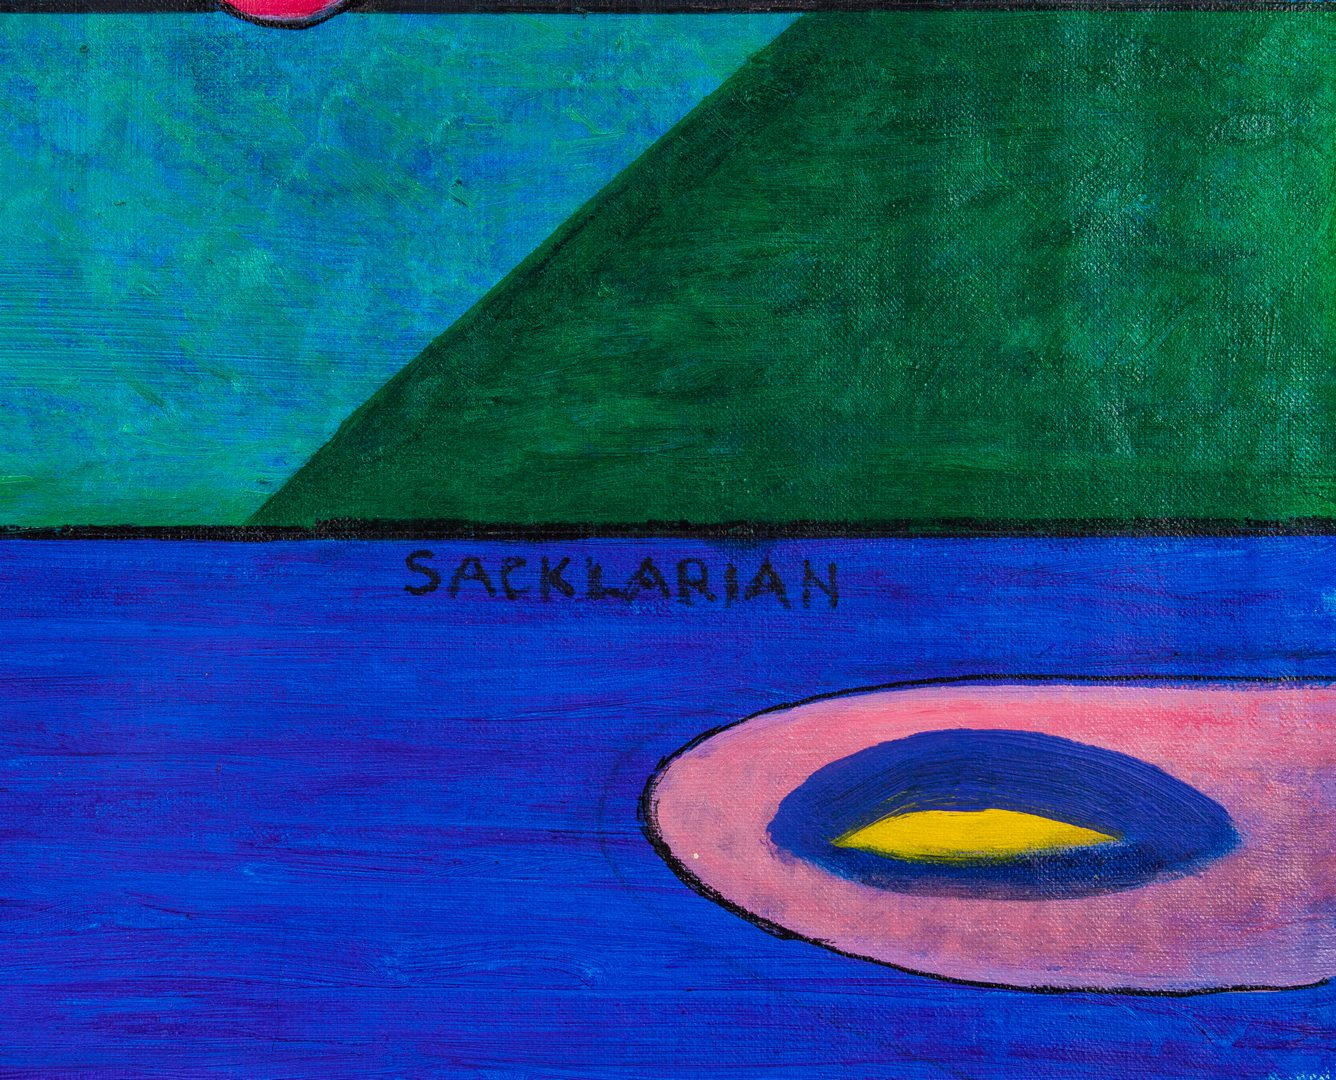 Lot 540: Family Traditions by Stephen Sacklarian